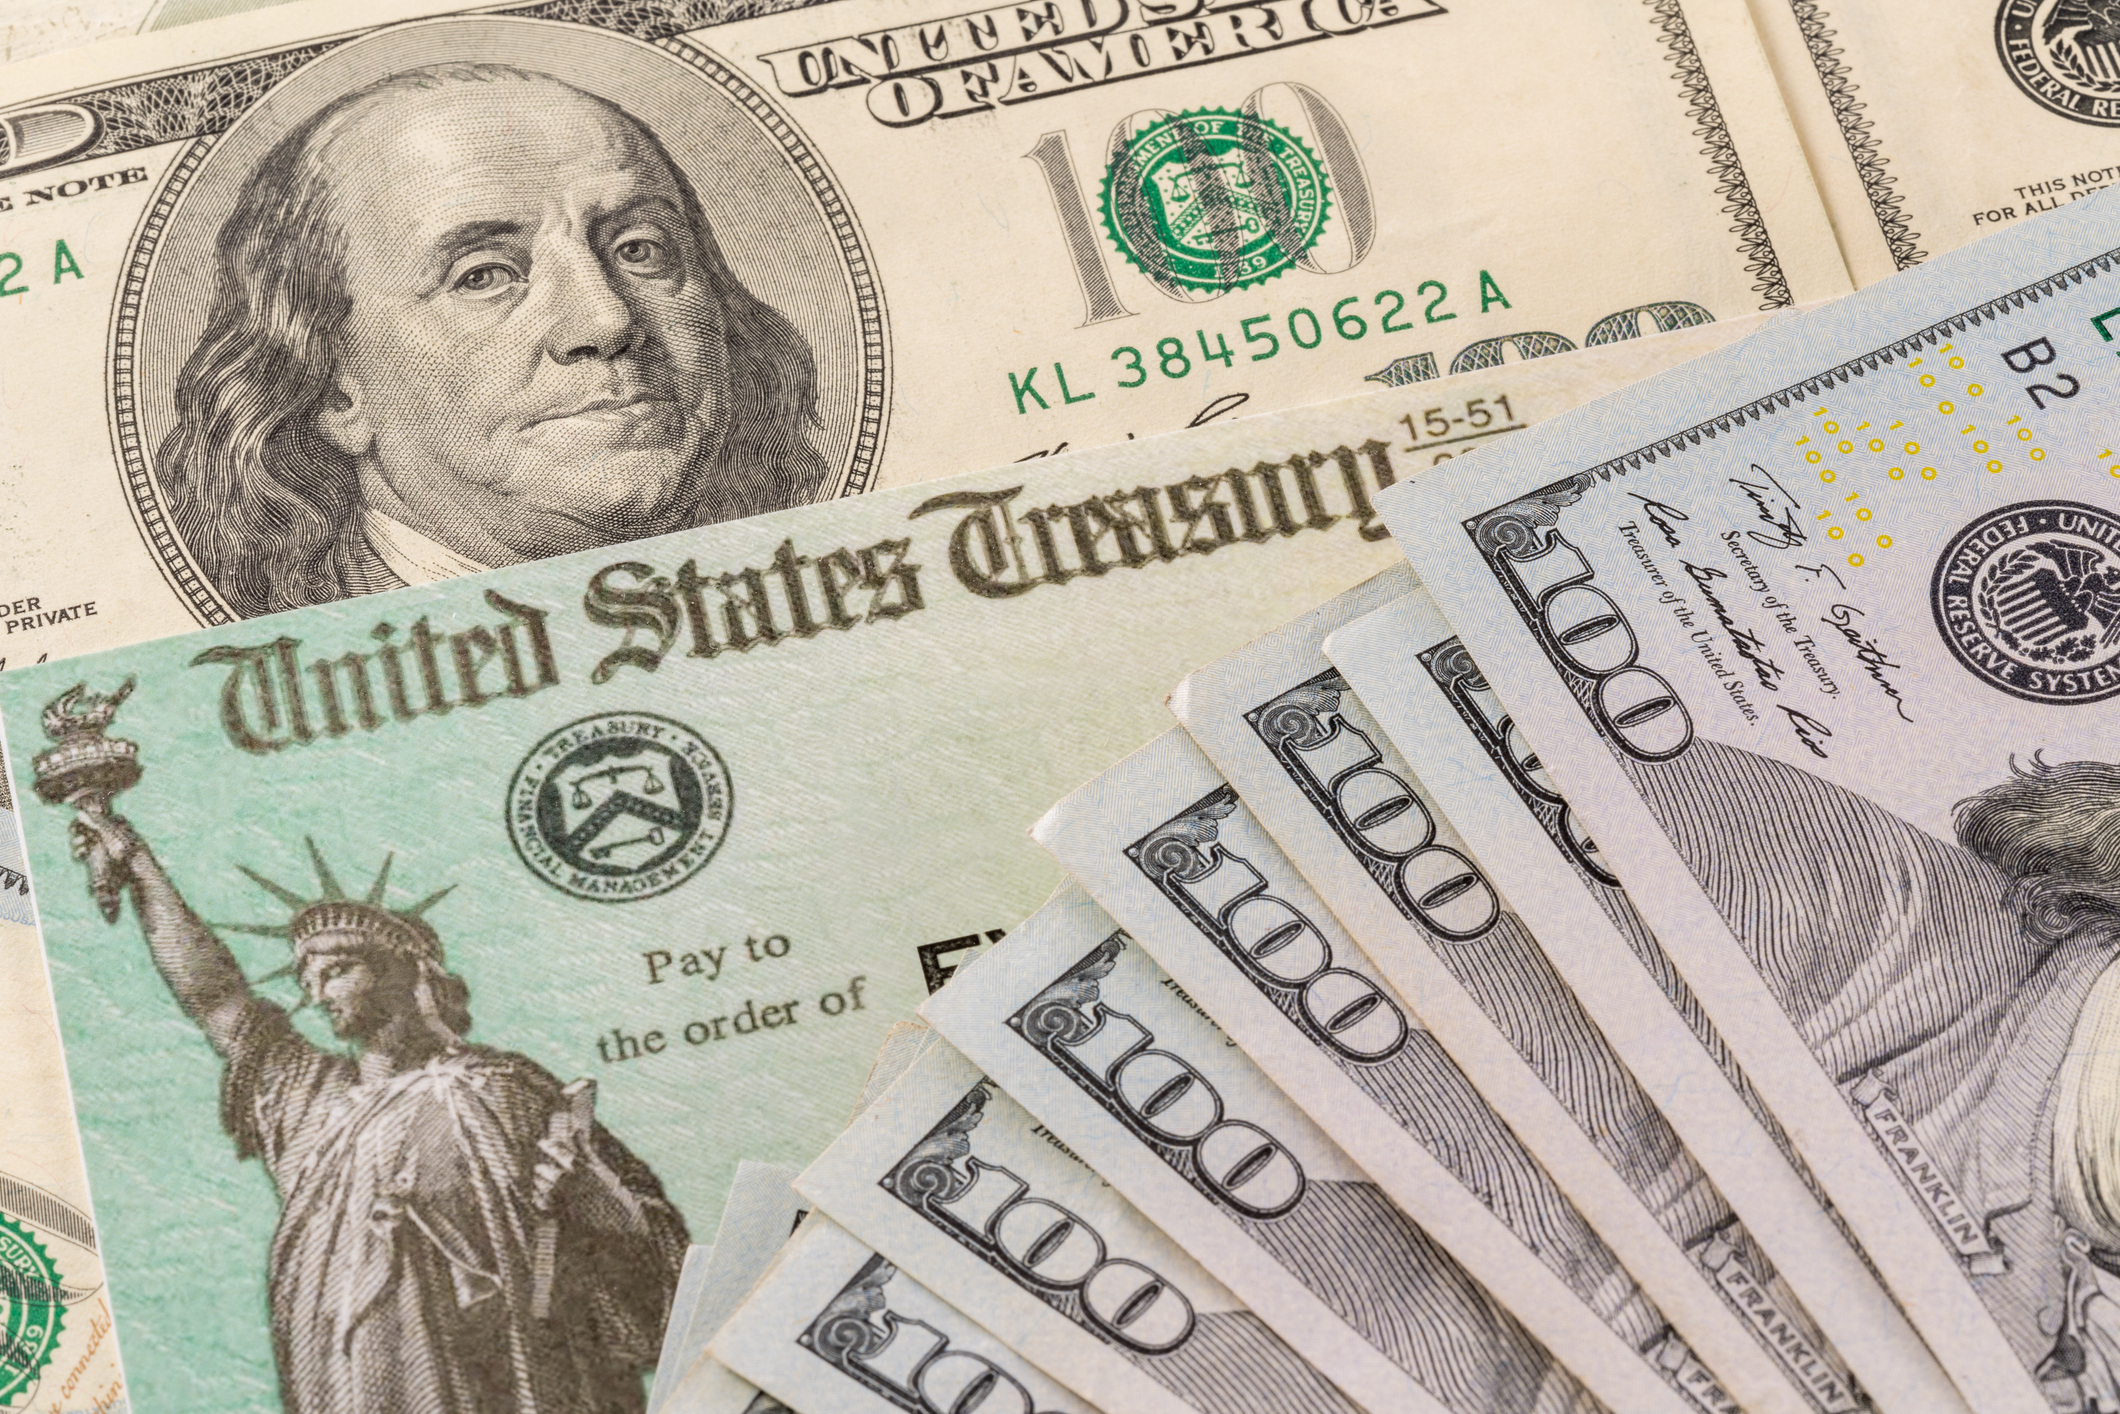 Irs To Issue 2nd Round Of Advance Child Tax Credit Payments Friday